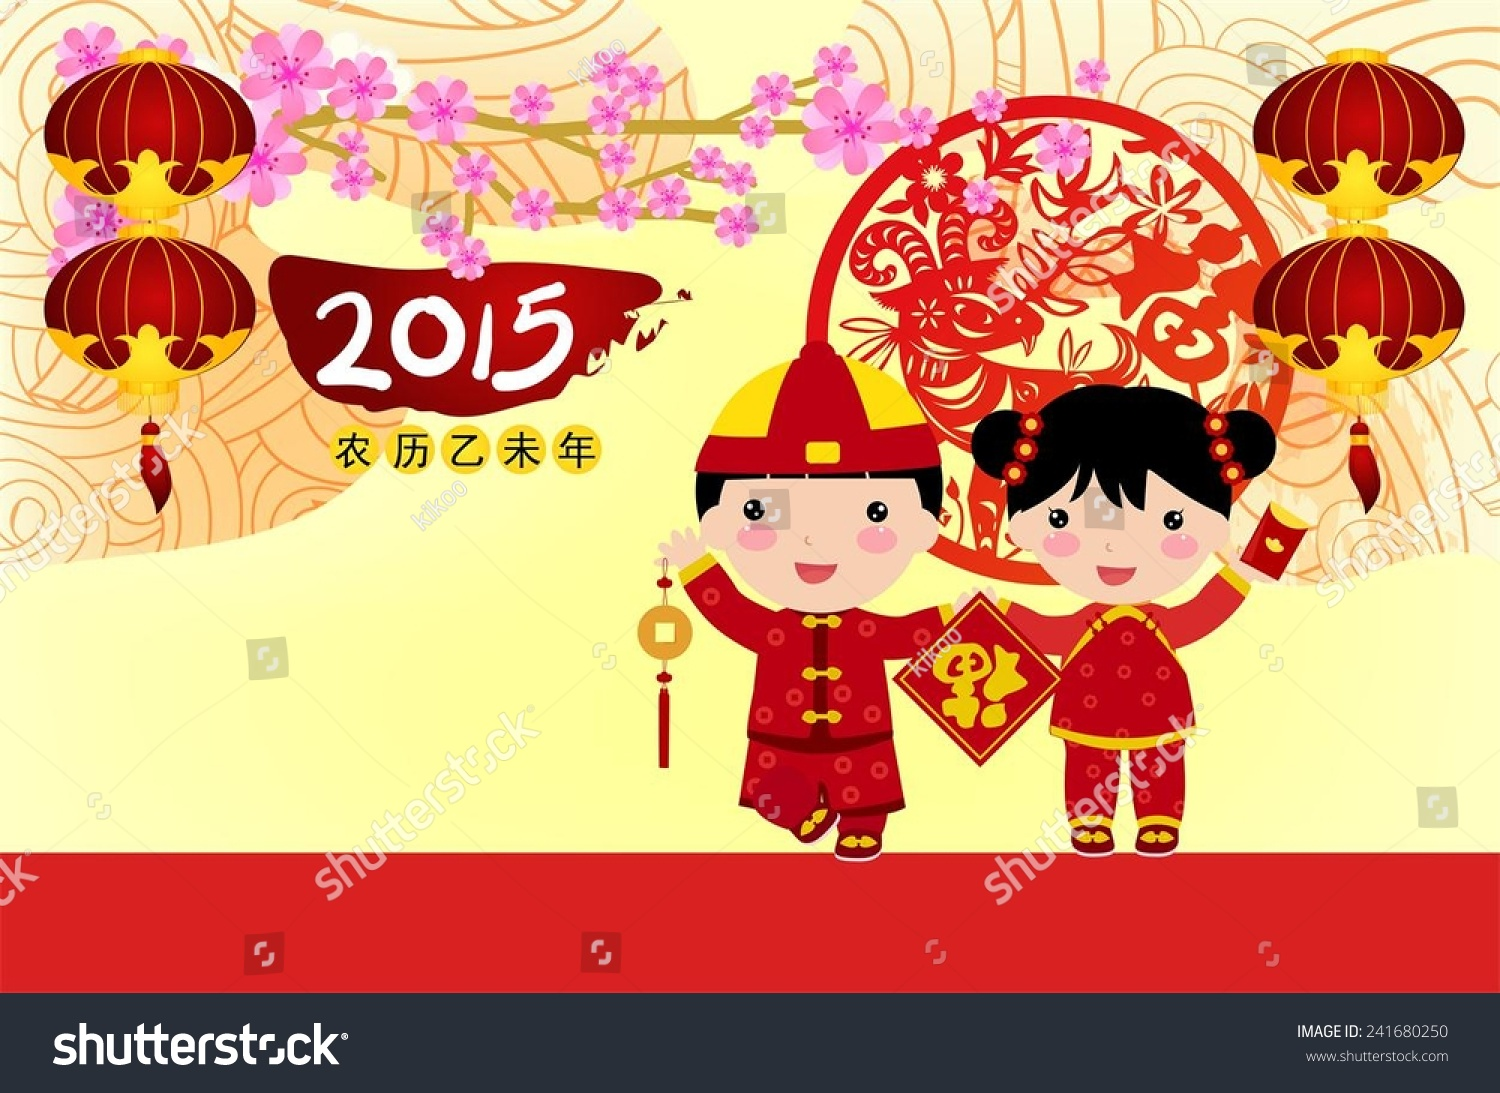 Happy Chinese New Year Cartoon Stock Photo